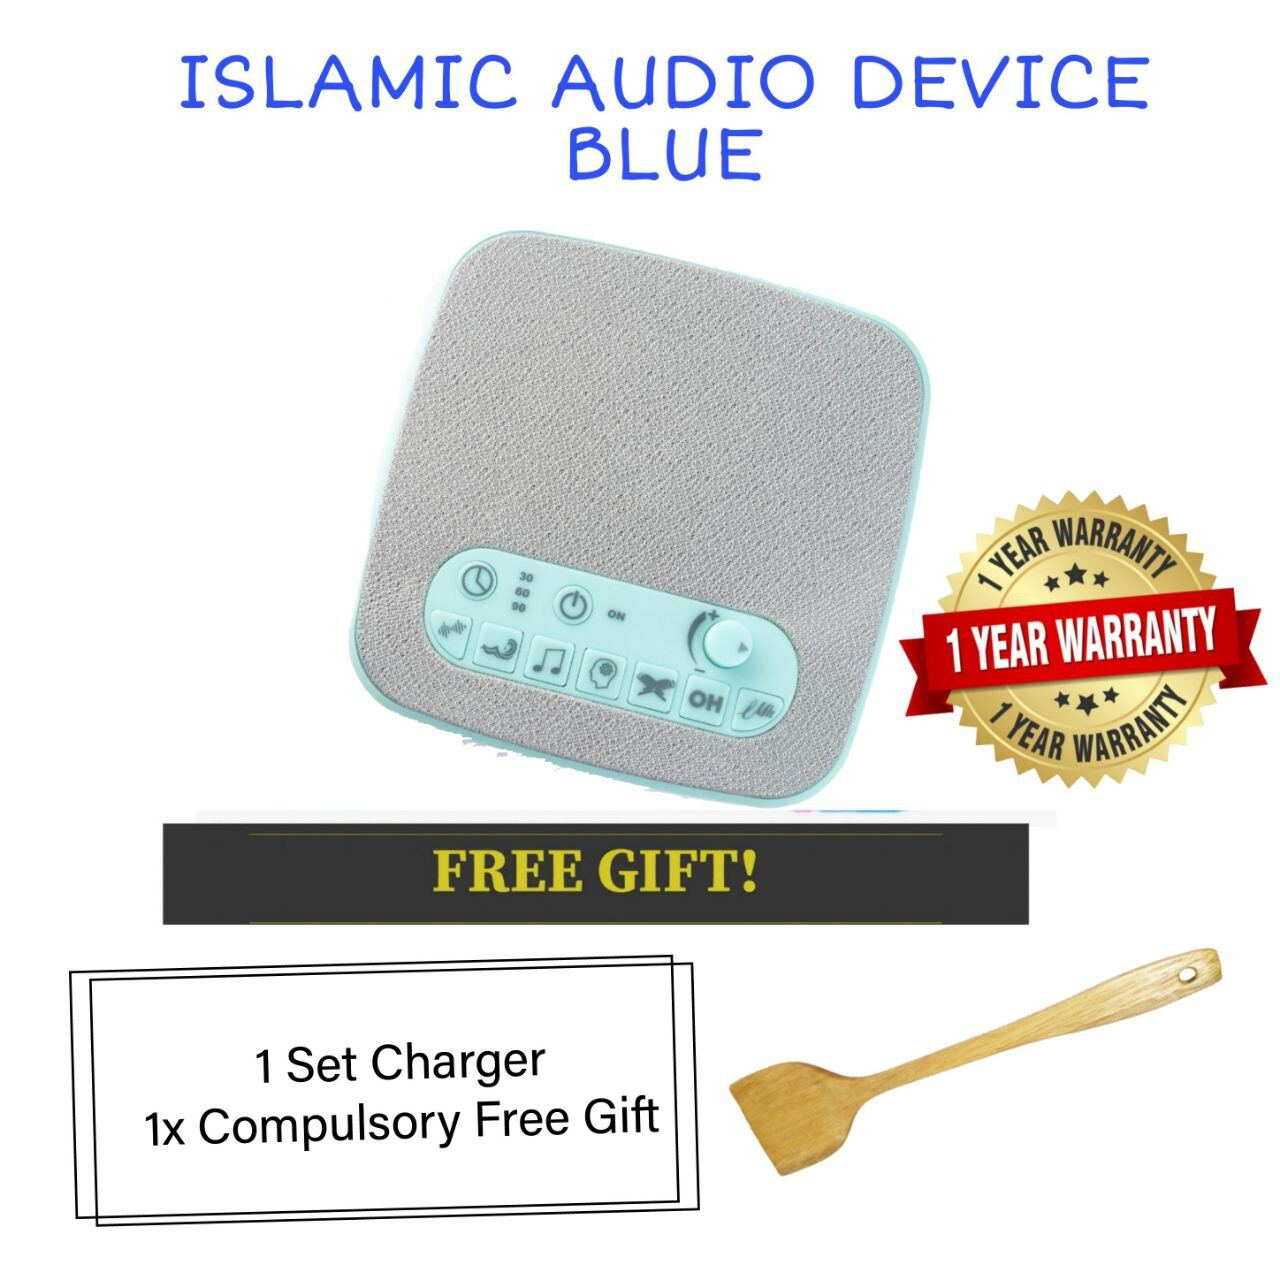 (READY STOCK) ISLAMIC AUDIO DEVICE MOMMYHANA X OMAR HANA (BLUE) (4)